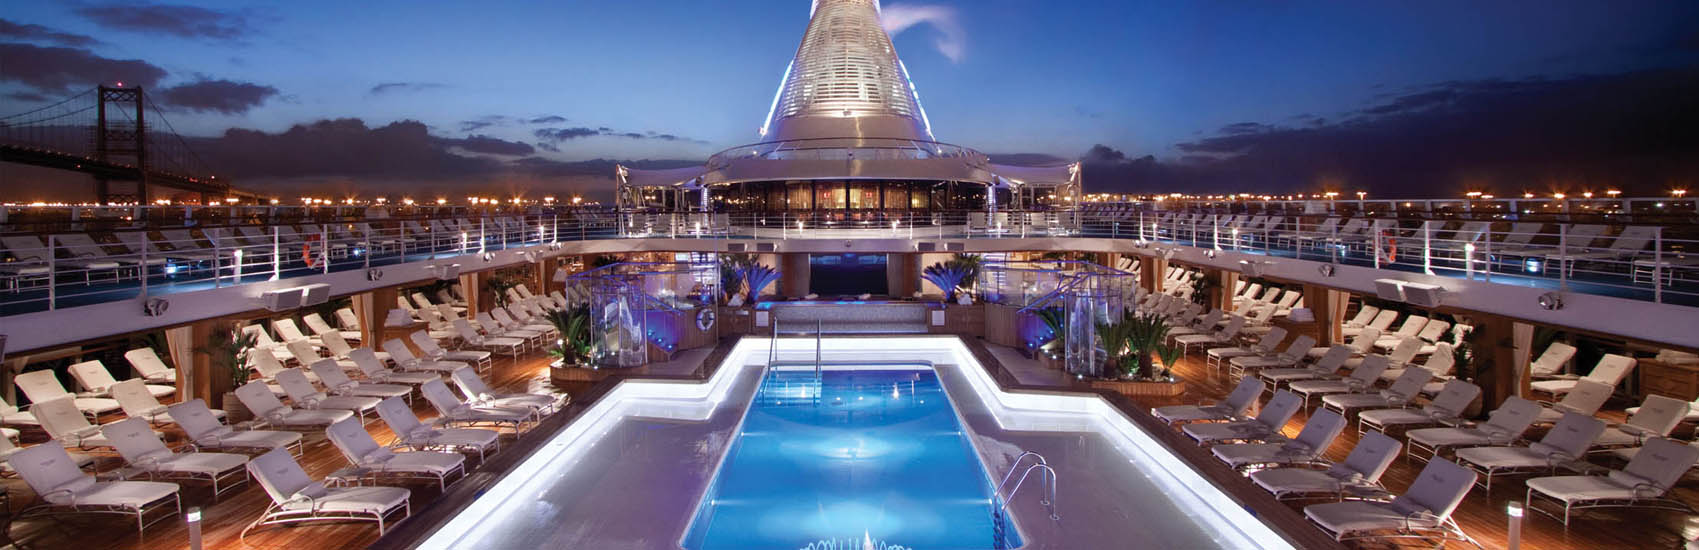 Choose Your Caribbean Adventure with Oceania Cruises 2